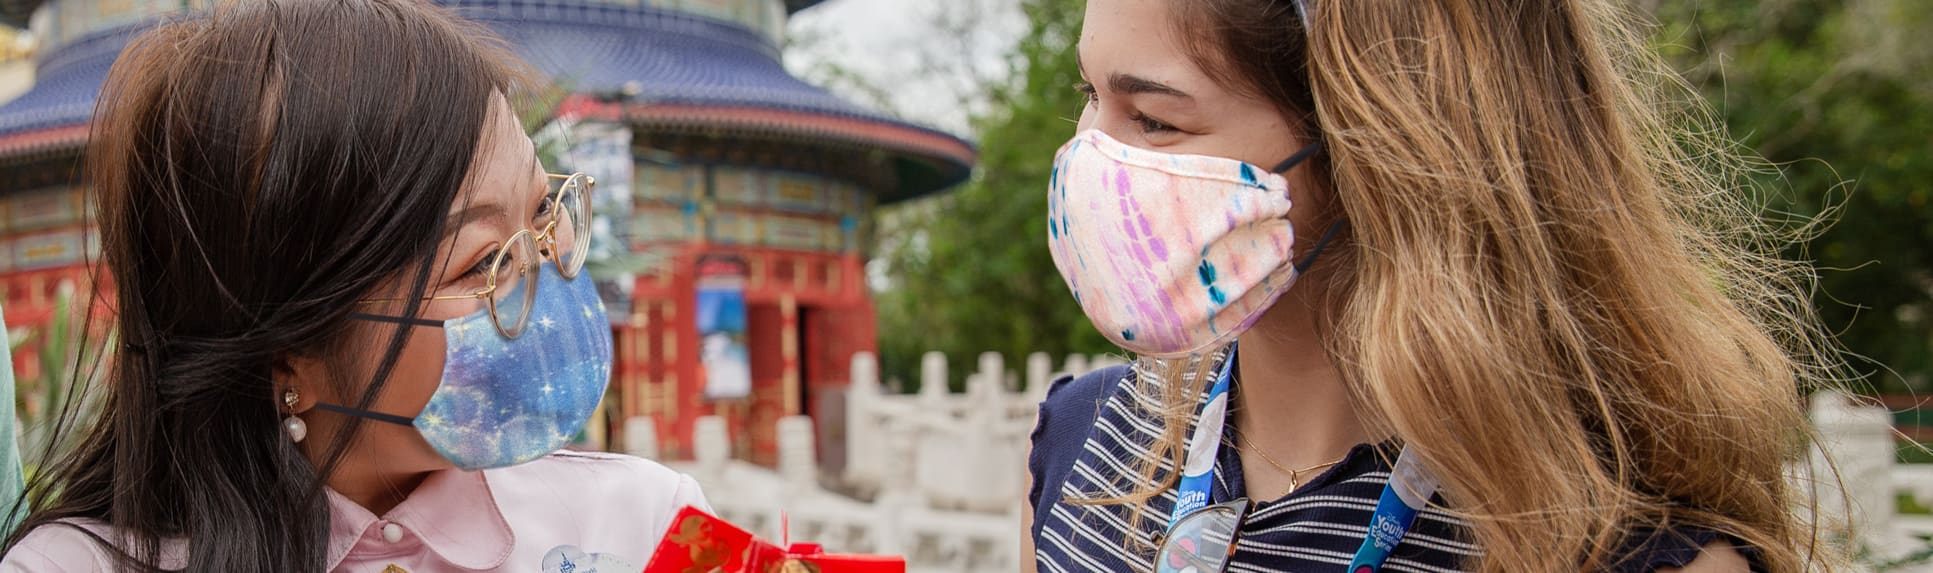 A Cast Member wearing a mask and a badge that reads 'Ningjie' shows an origami design to another woman wearing a mask in front of a building at the China Pavilion at Epcot